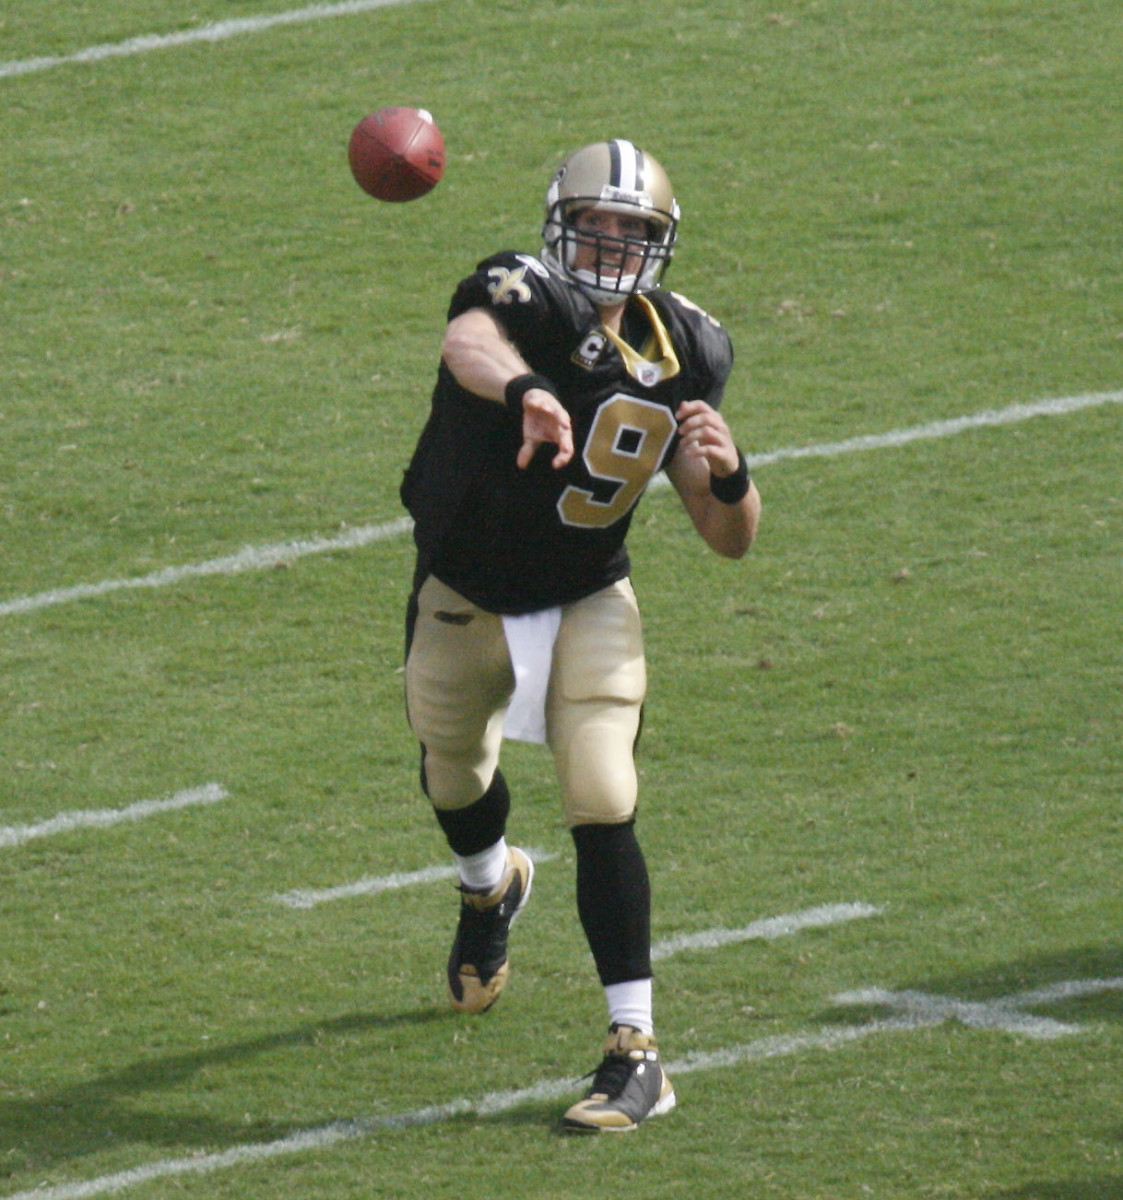 Brees, pictured here in 2008, has impressively large hands